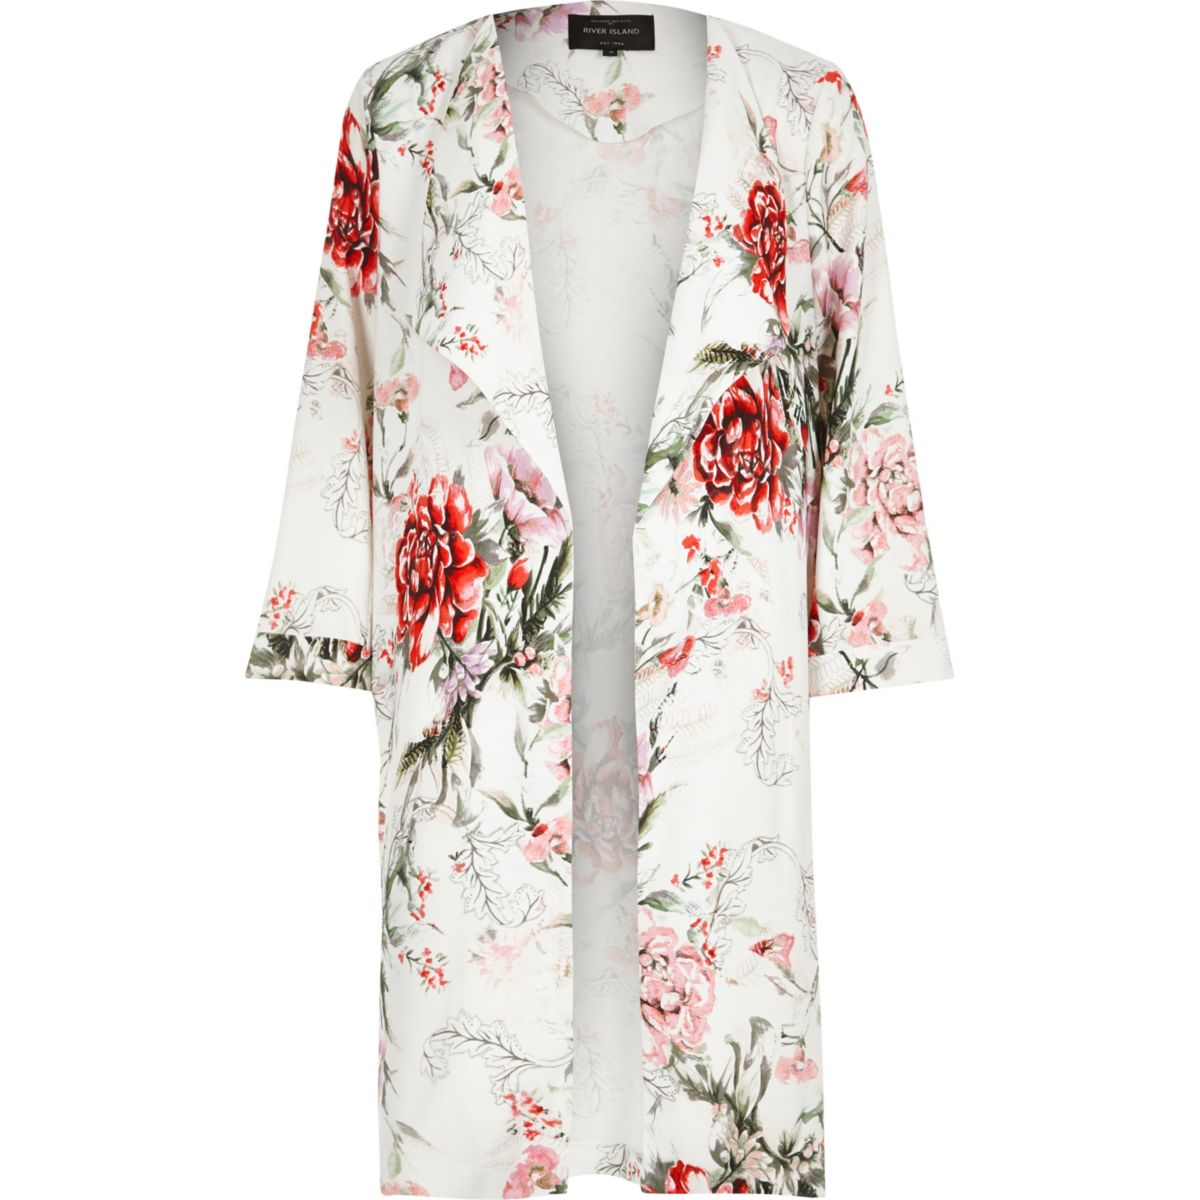 White floral print duster coat